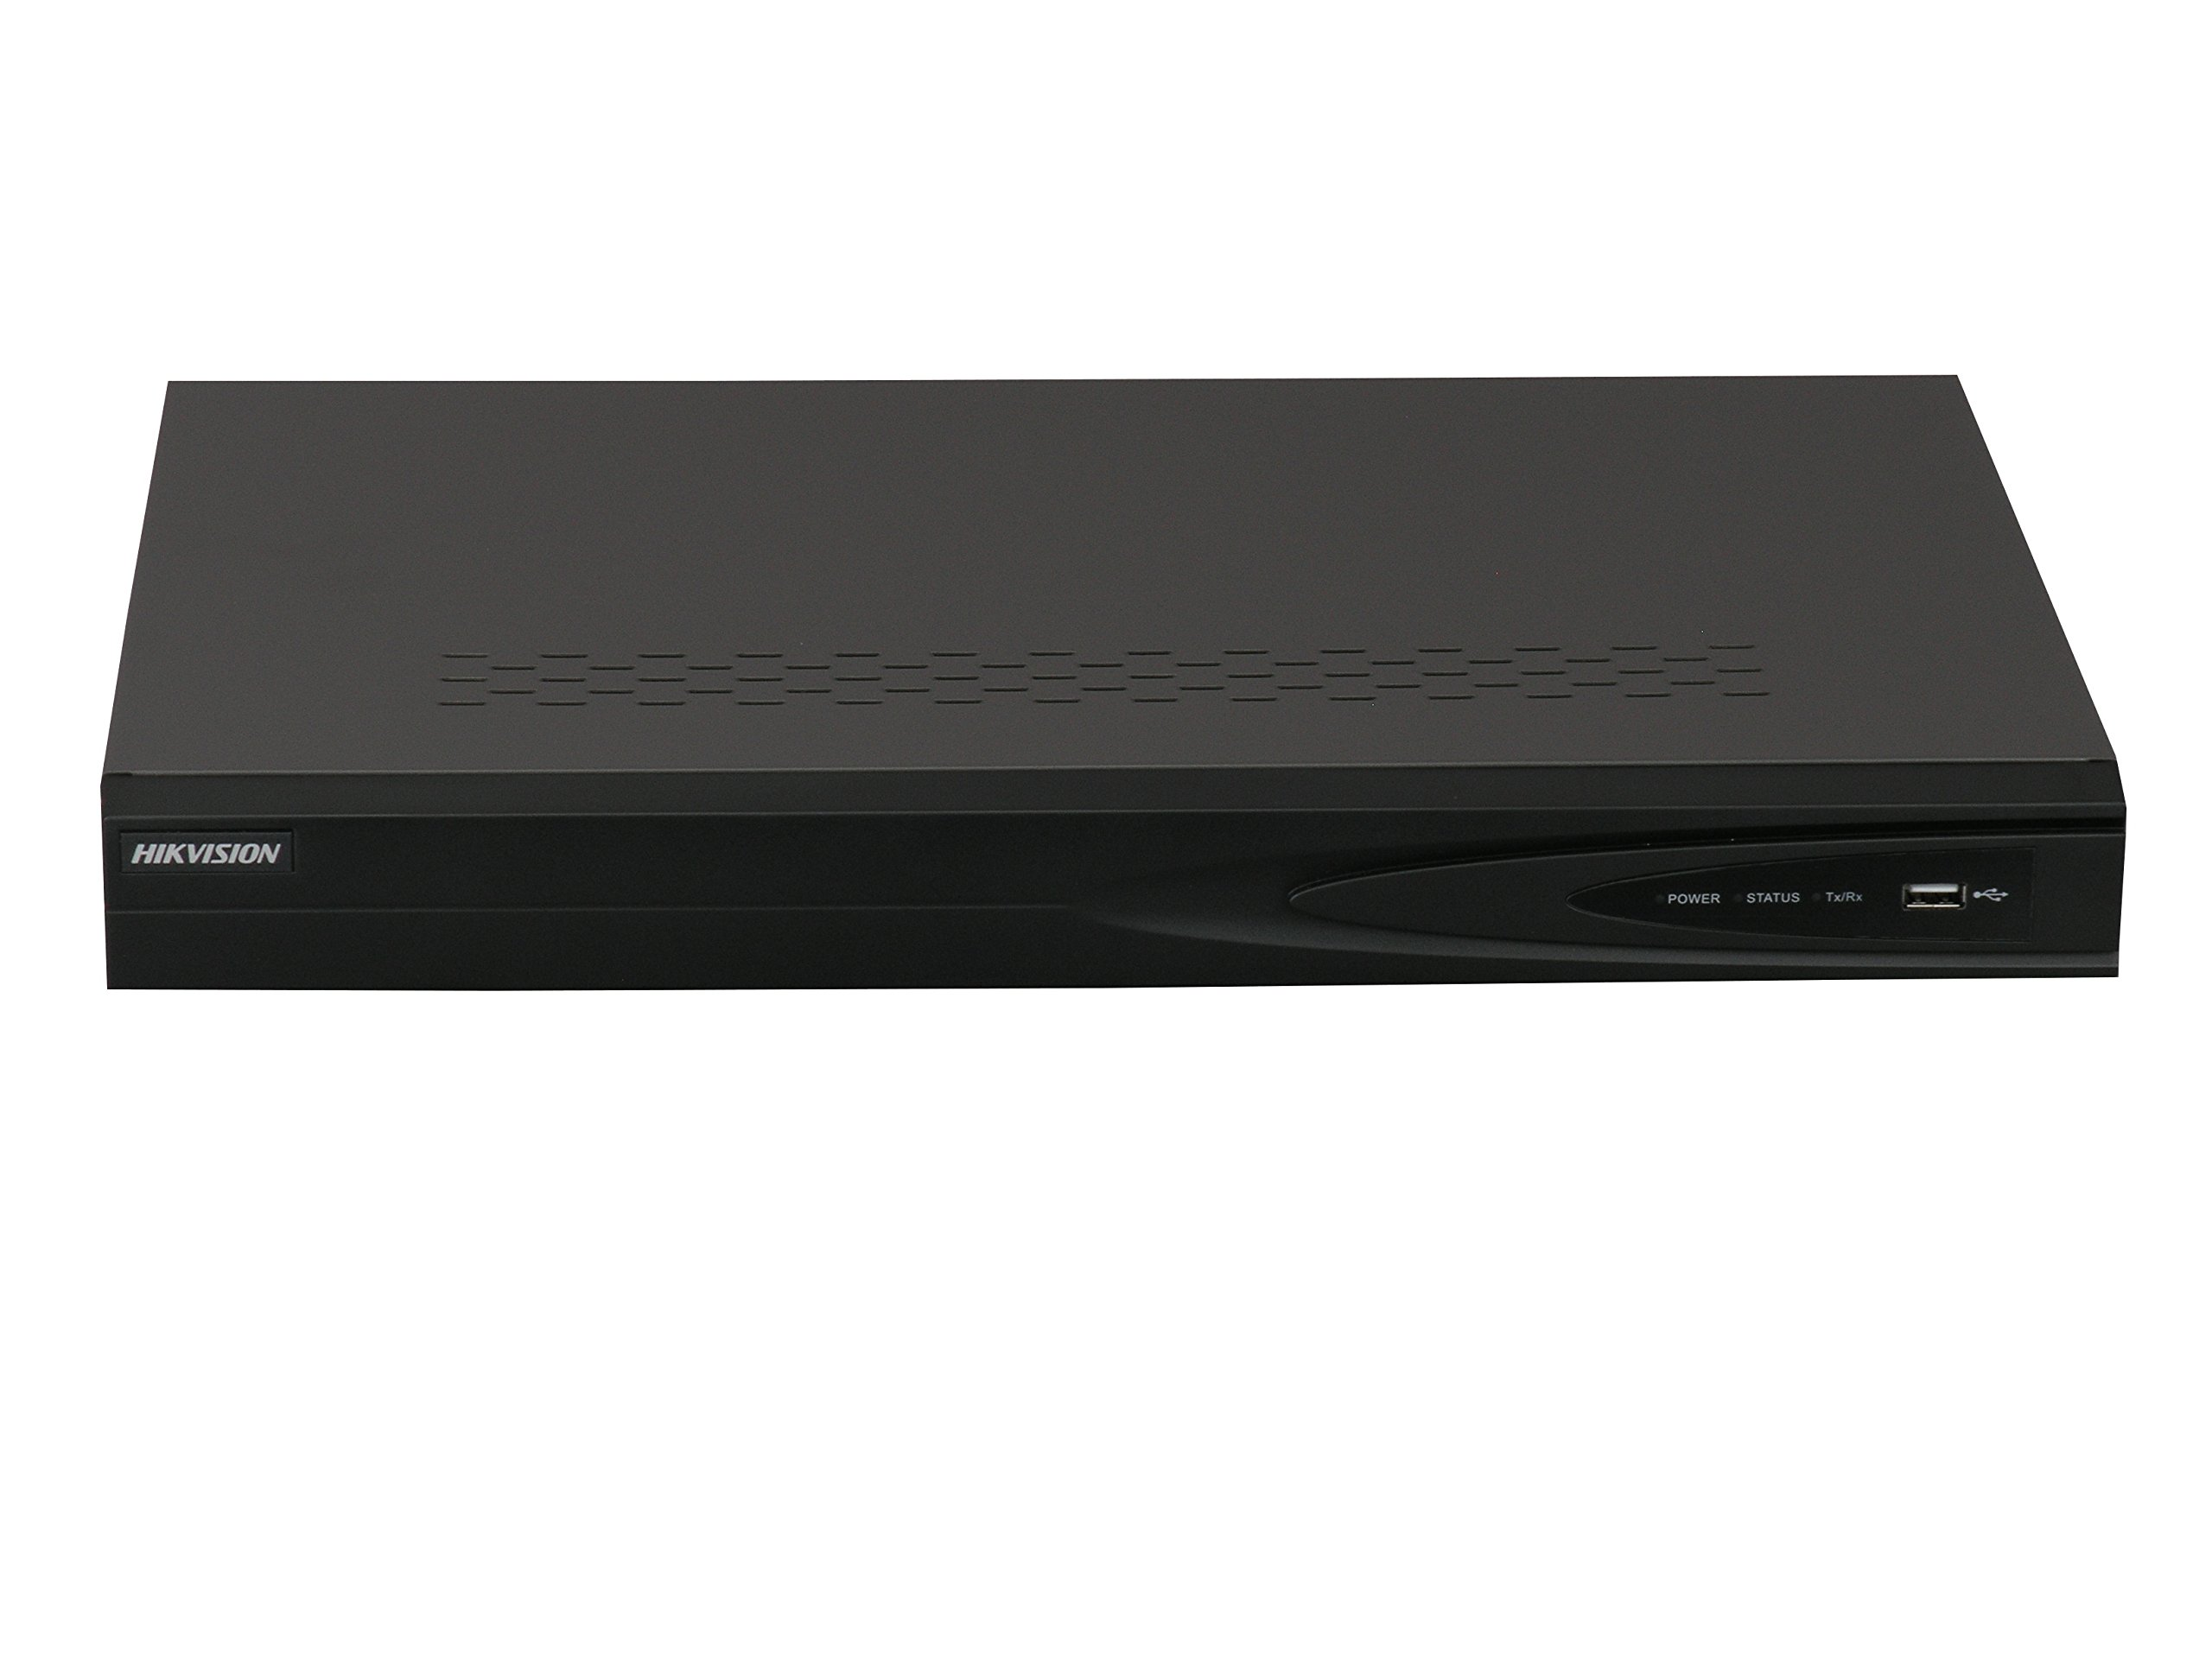 HIKVISION DS-7604NI-E1/4P 4CH PoE NVR Network Video Recorder with up to 5MP Resolution Recording Includes a 1TB Hard Drive by Hikvision (Image #1)